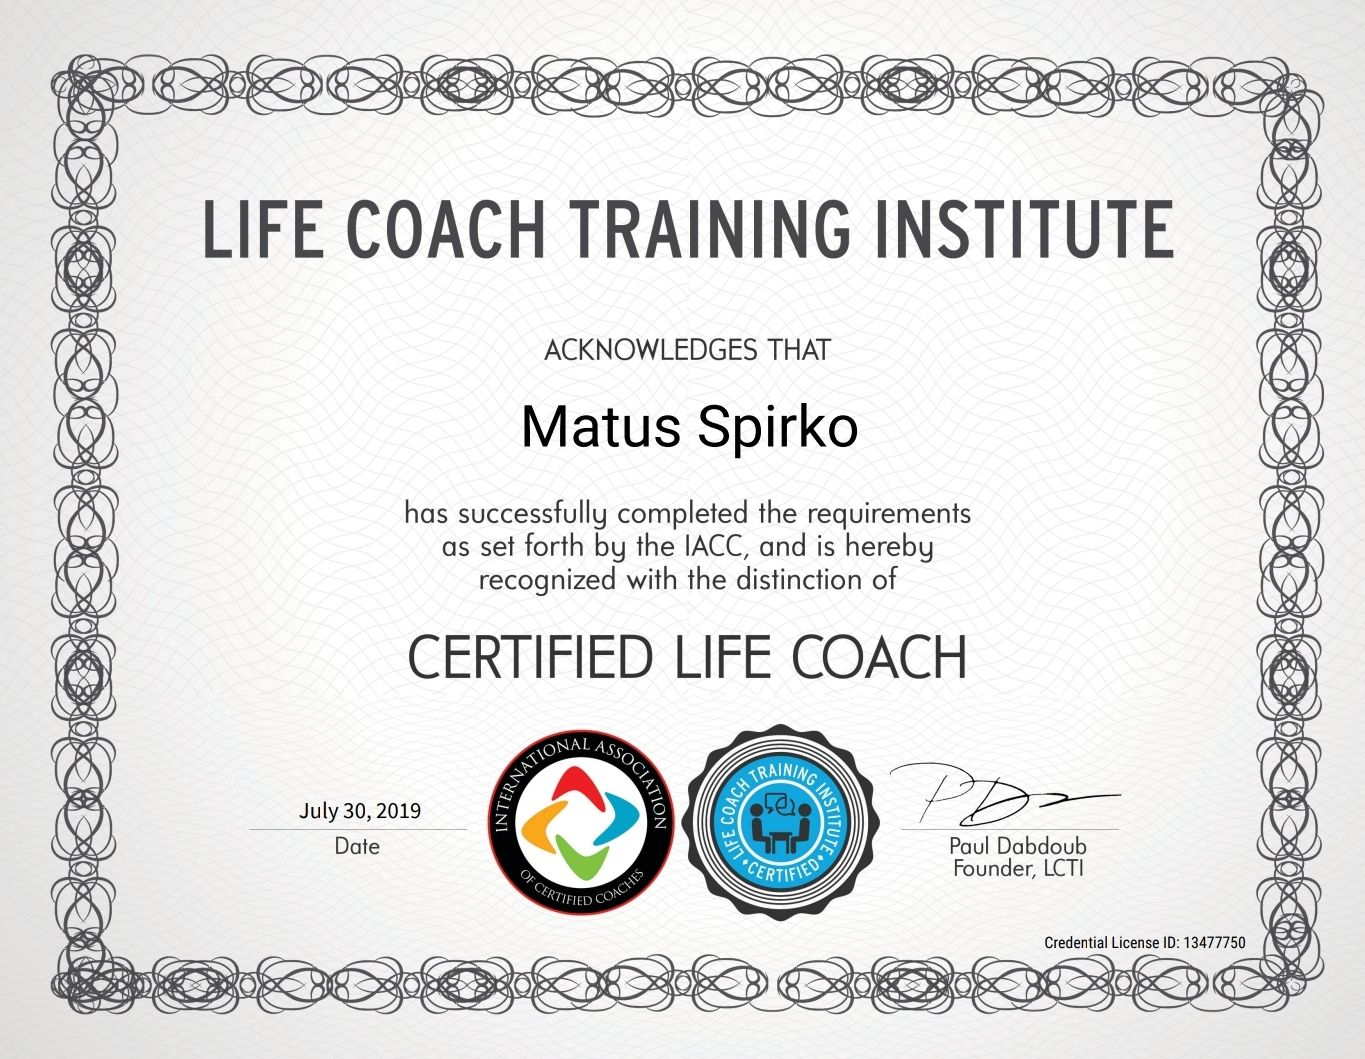 Life Coach Training Institute